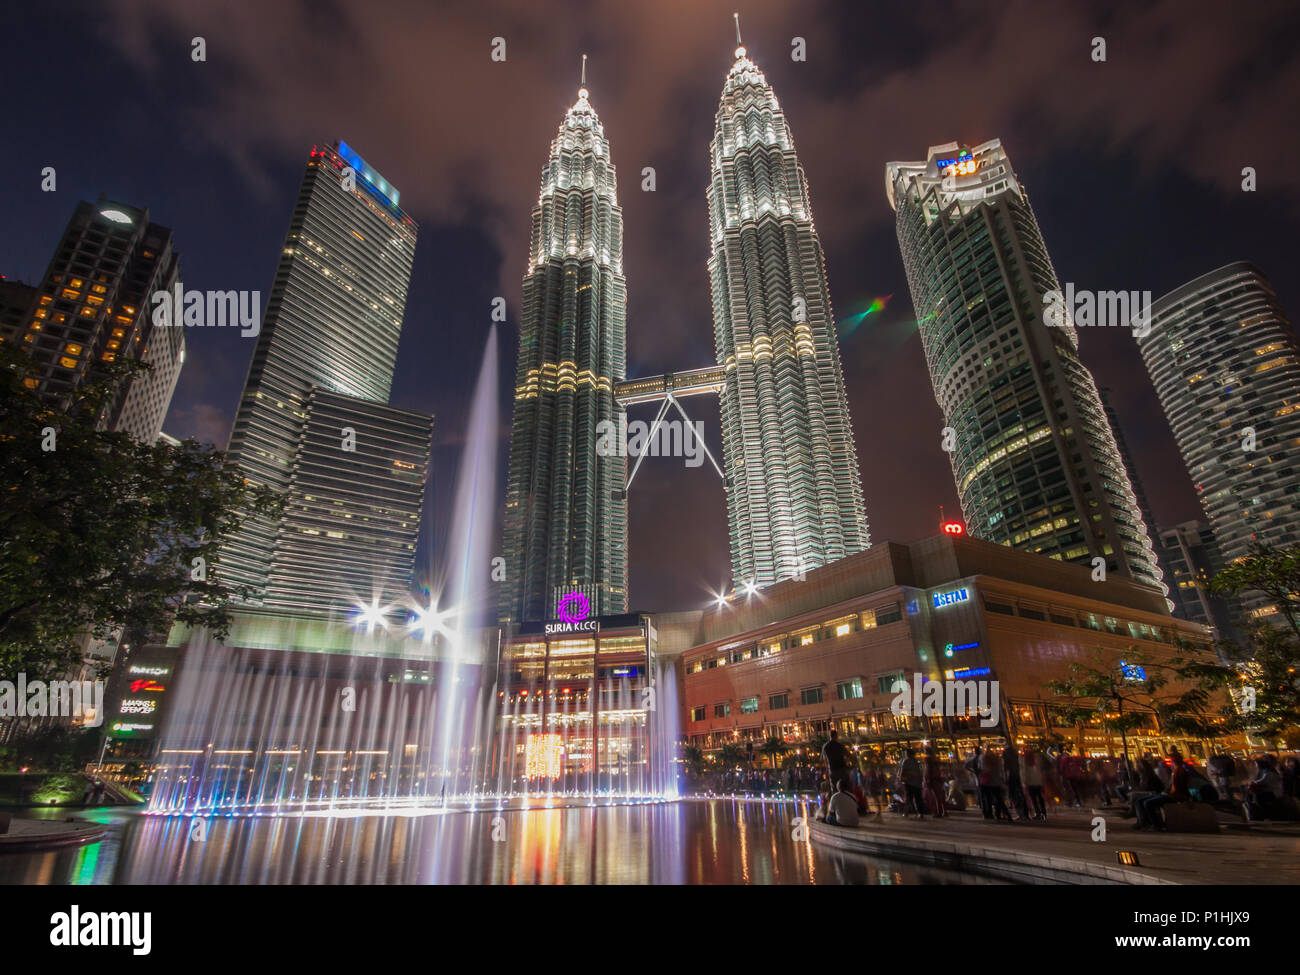 Kuala Lumpur, Malaysia - a cozy capital which offers a lot of interesting of landmarks, the most famous of them is the Petronas Towers - Stock Image